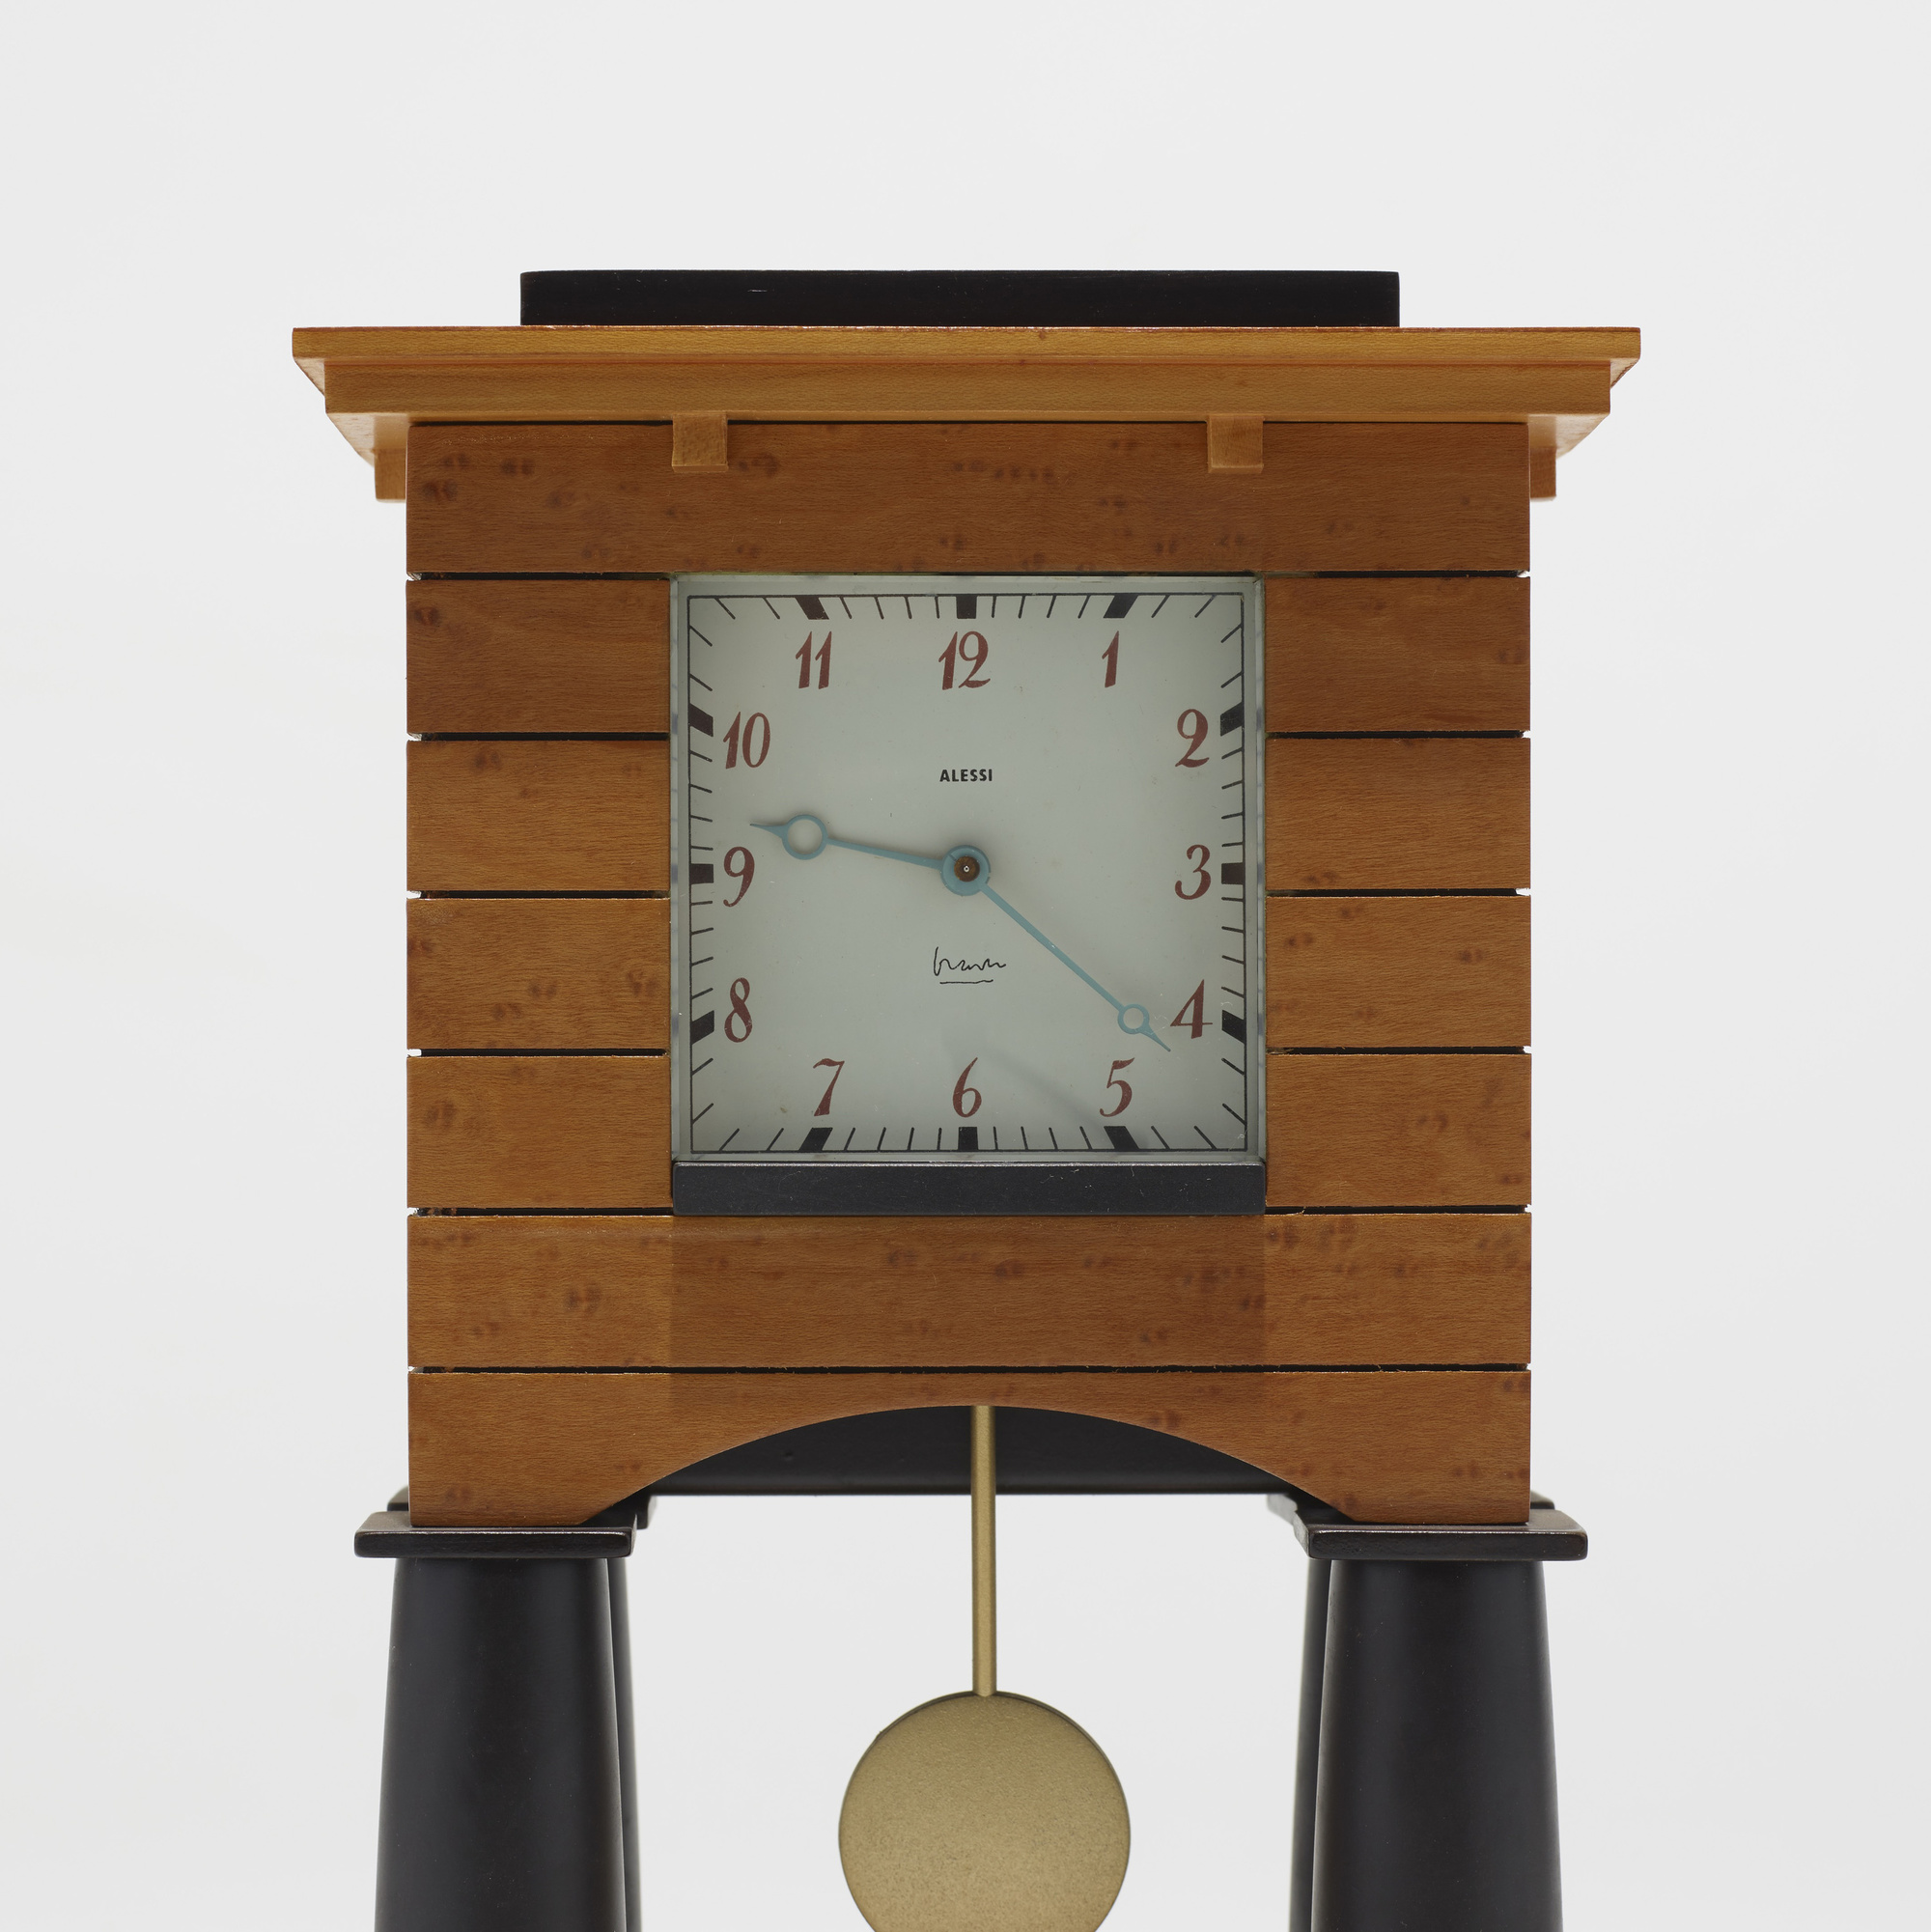 276: Michael Graves / Mantle Clock (3 of 3)